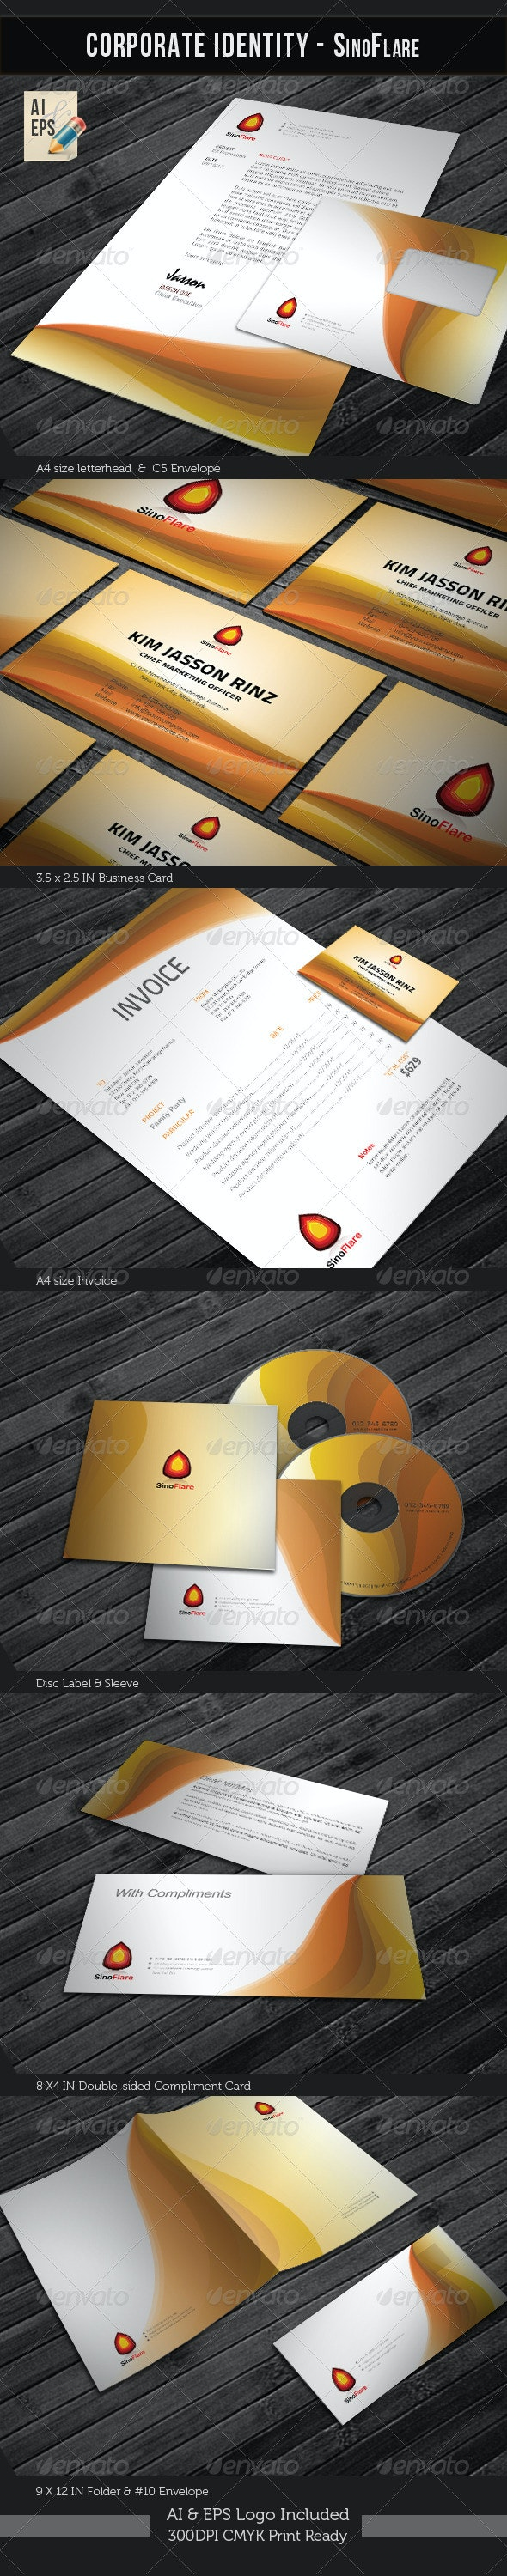 Corporate Identity Package - Sino Flare - Stationery Print Templates